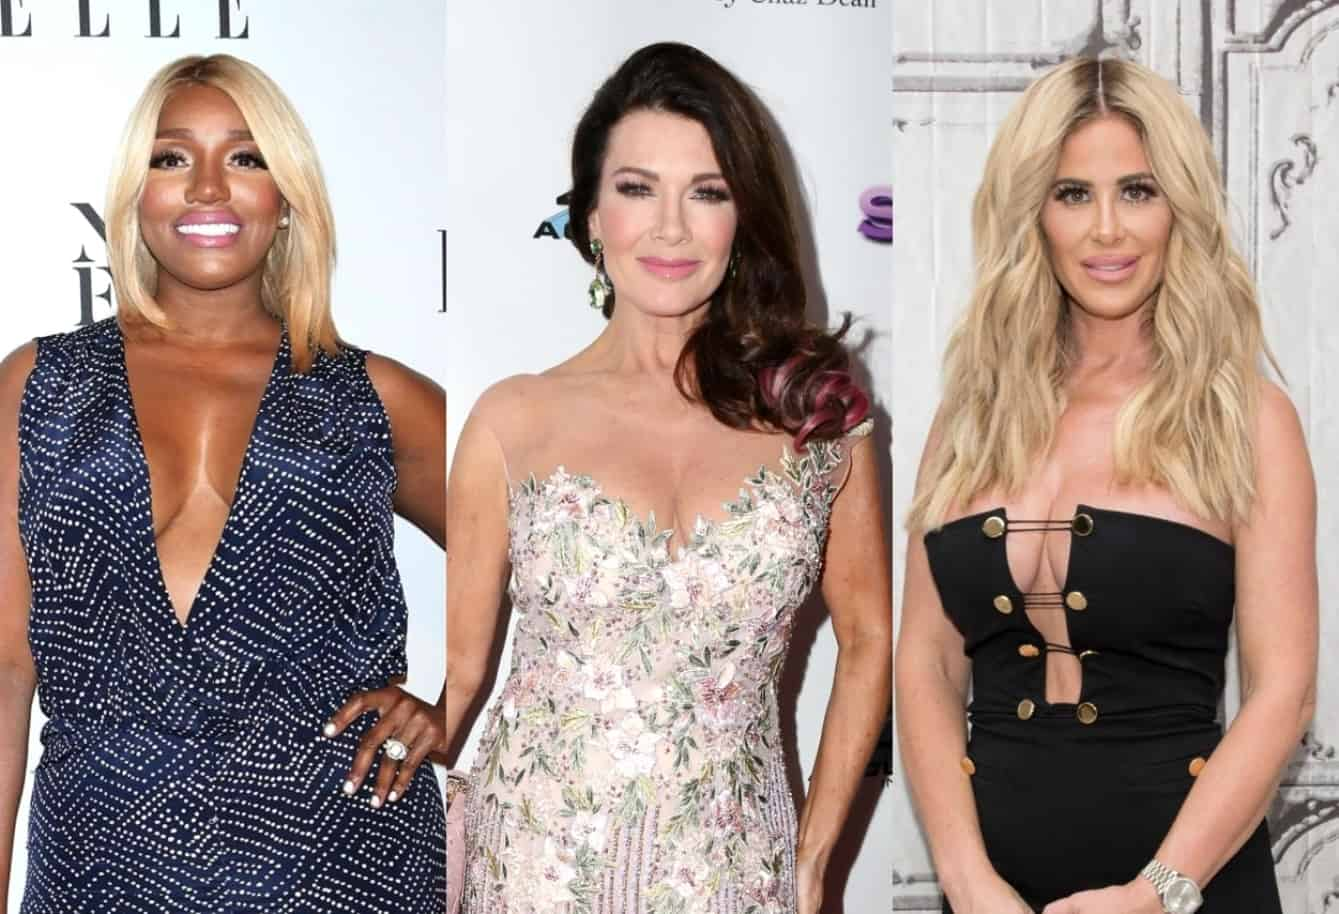 RHOA's Nene Leakes Calls Out Bravo for Giving Lisa Vanderpump and Kim Zolciak Spinoffs After They Quit the Real Housewives Midway Through Their Seasons and Claims They're Punishing Her for Early Reunion Exit, Plus Lisa Announces New Podcast